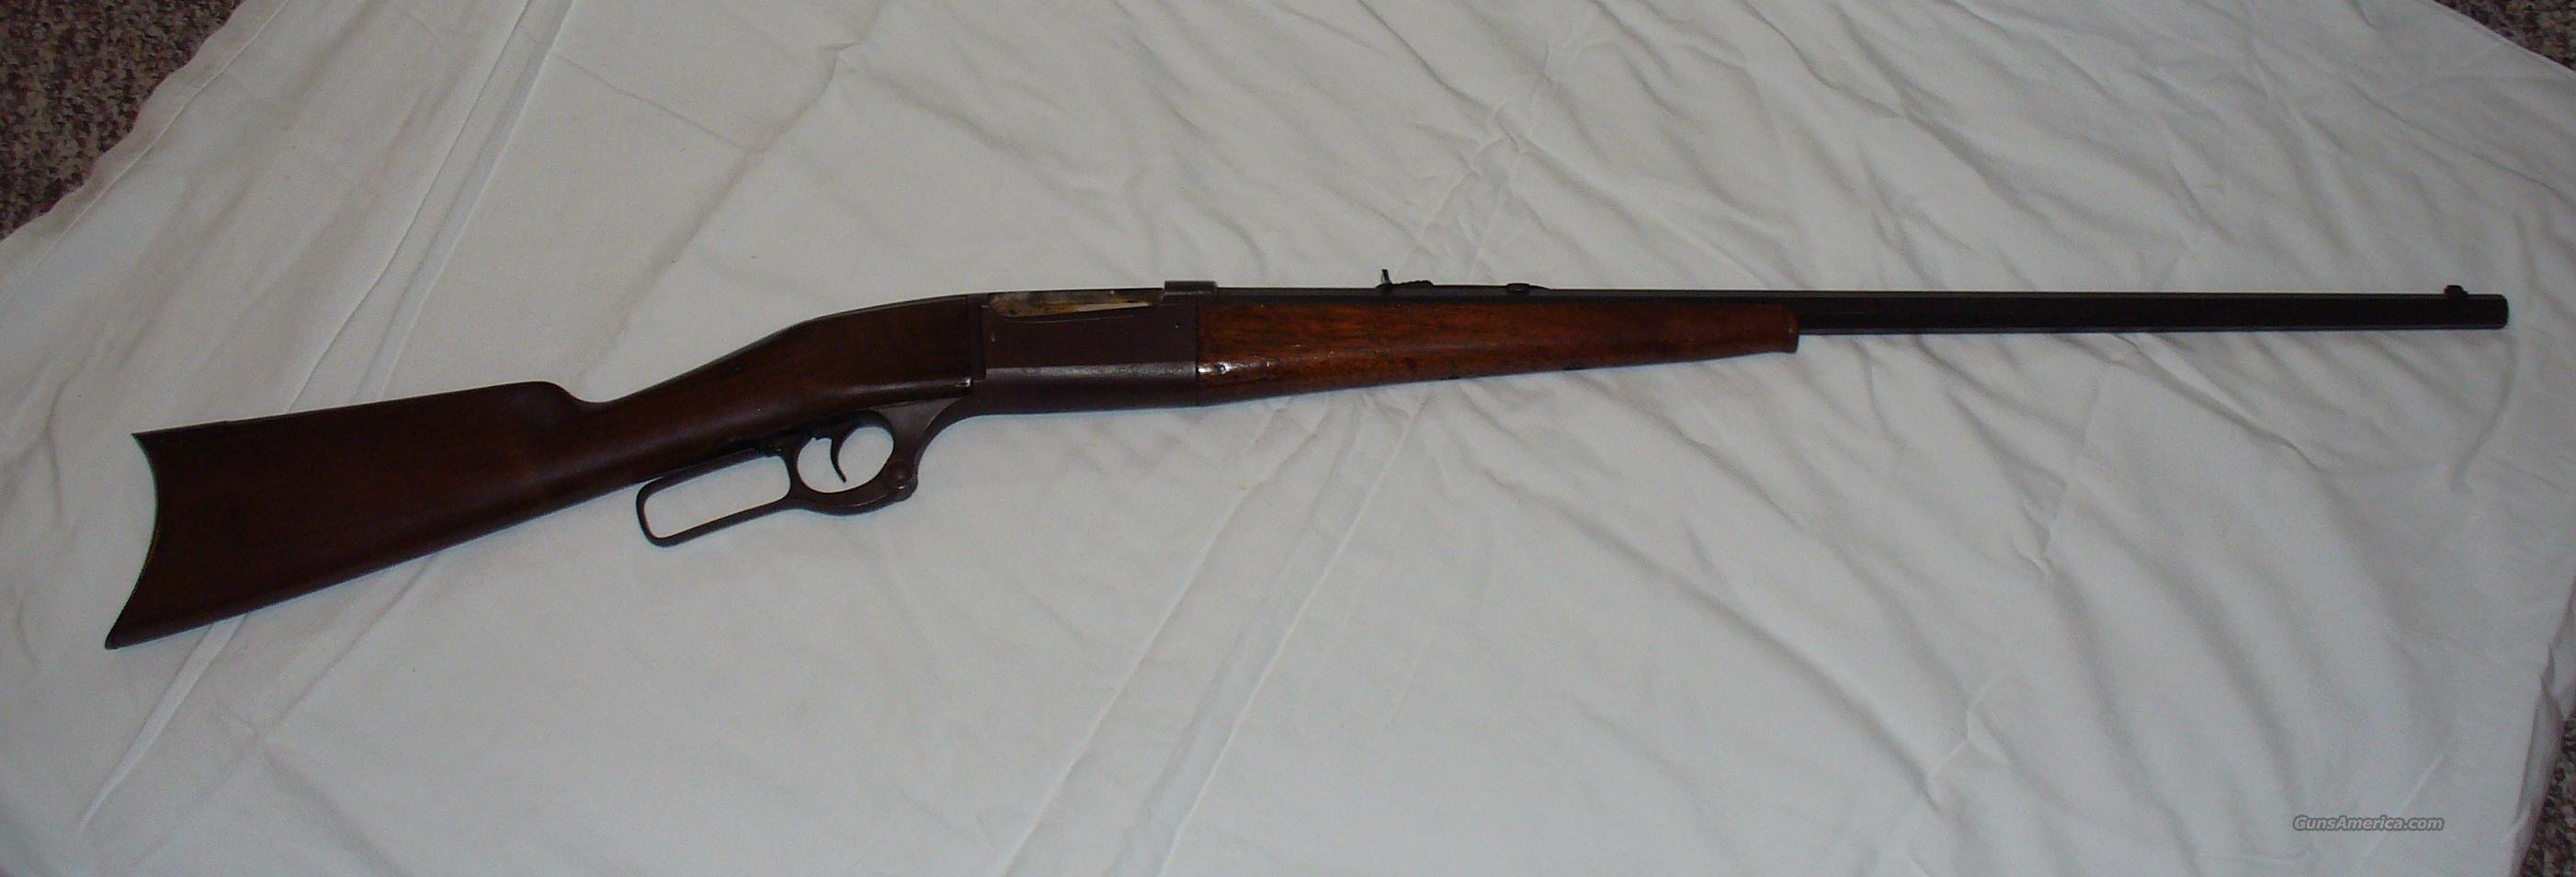 Savage Model 1899 Rifle  Guns > Rifles > Savage Rifles > Model 95/99 Family